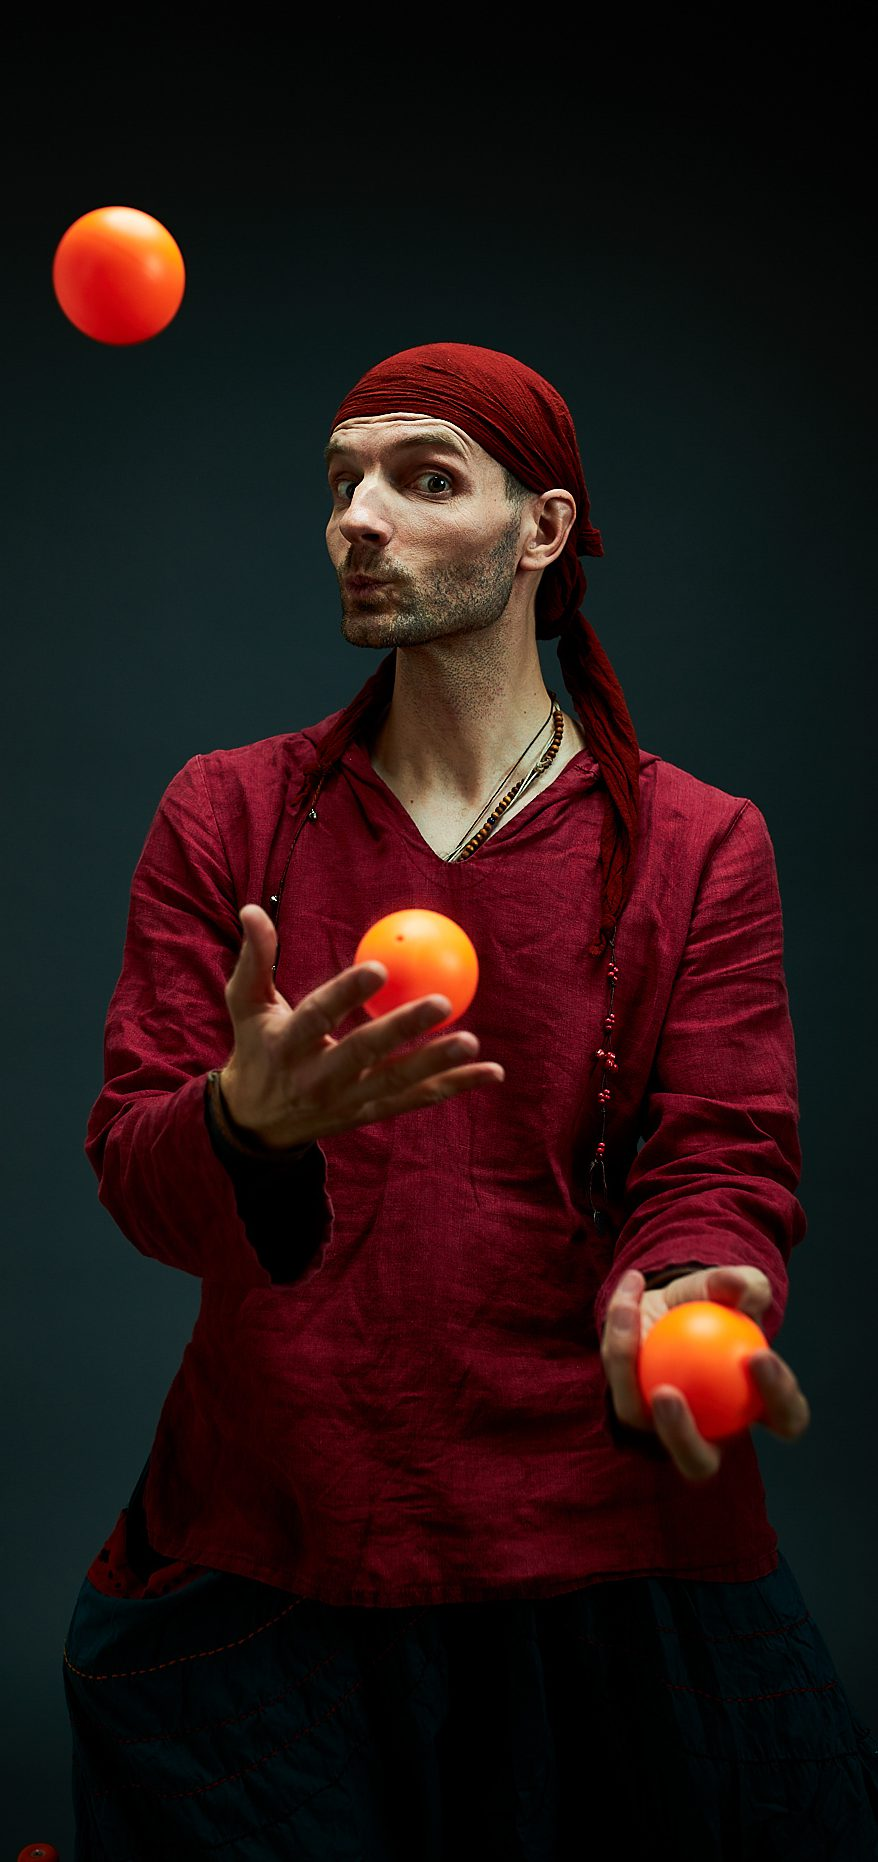 Portraits_Matze_Clown_12_06_209968 (2)